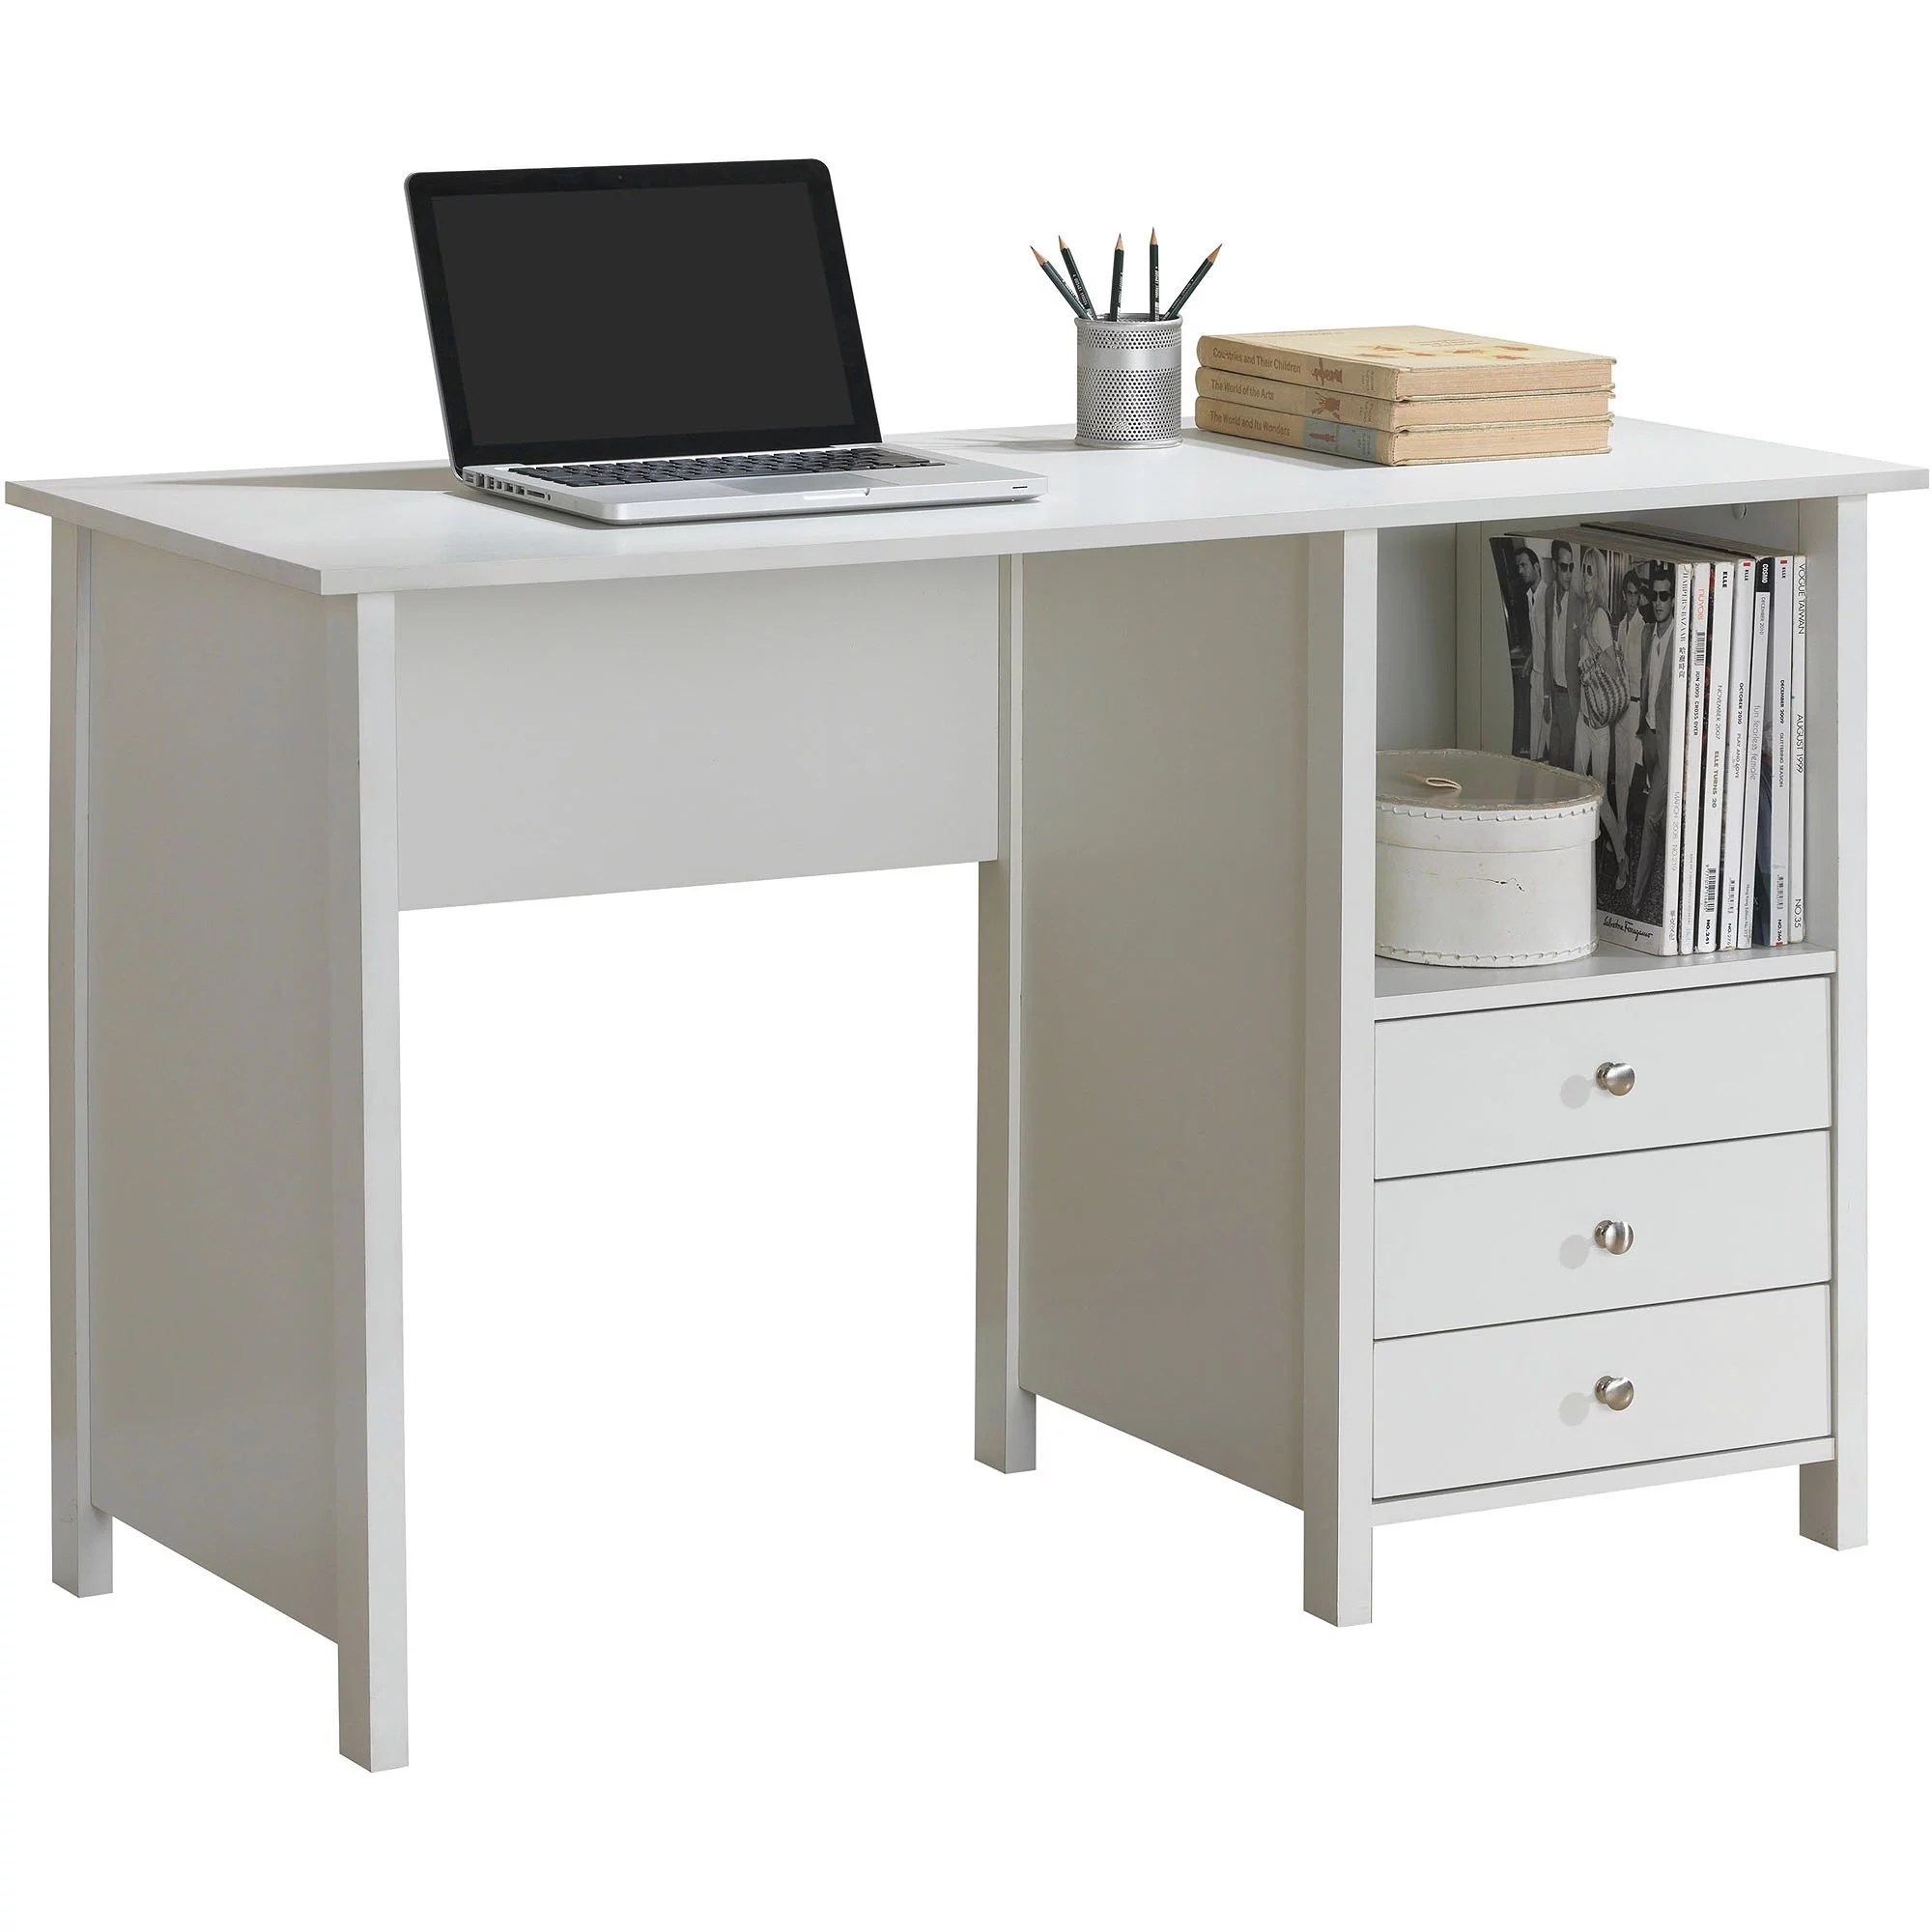 Desks With Drawers Details About Techni Mobili Contempo Desk With 3 Storage Drawers White